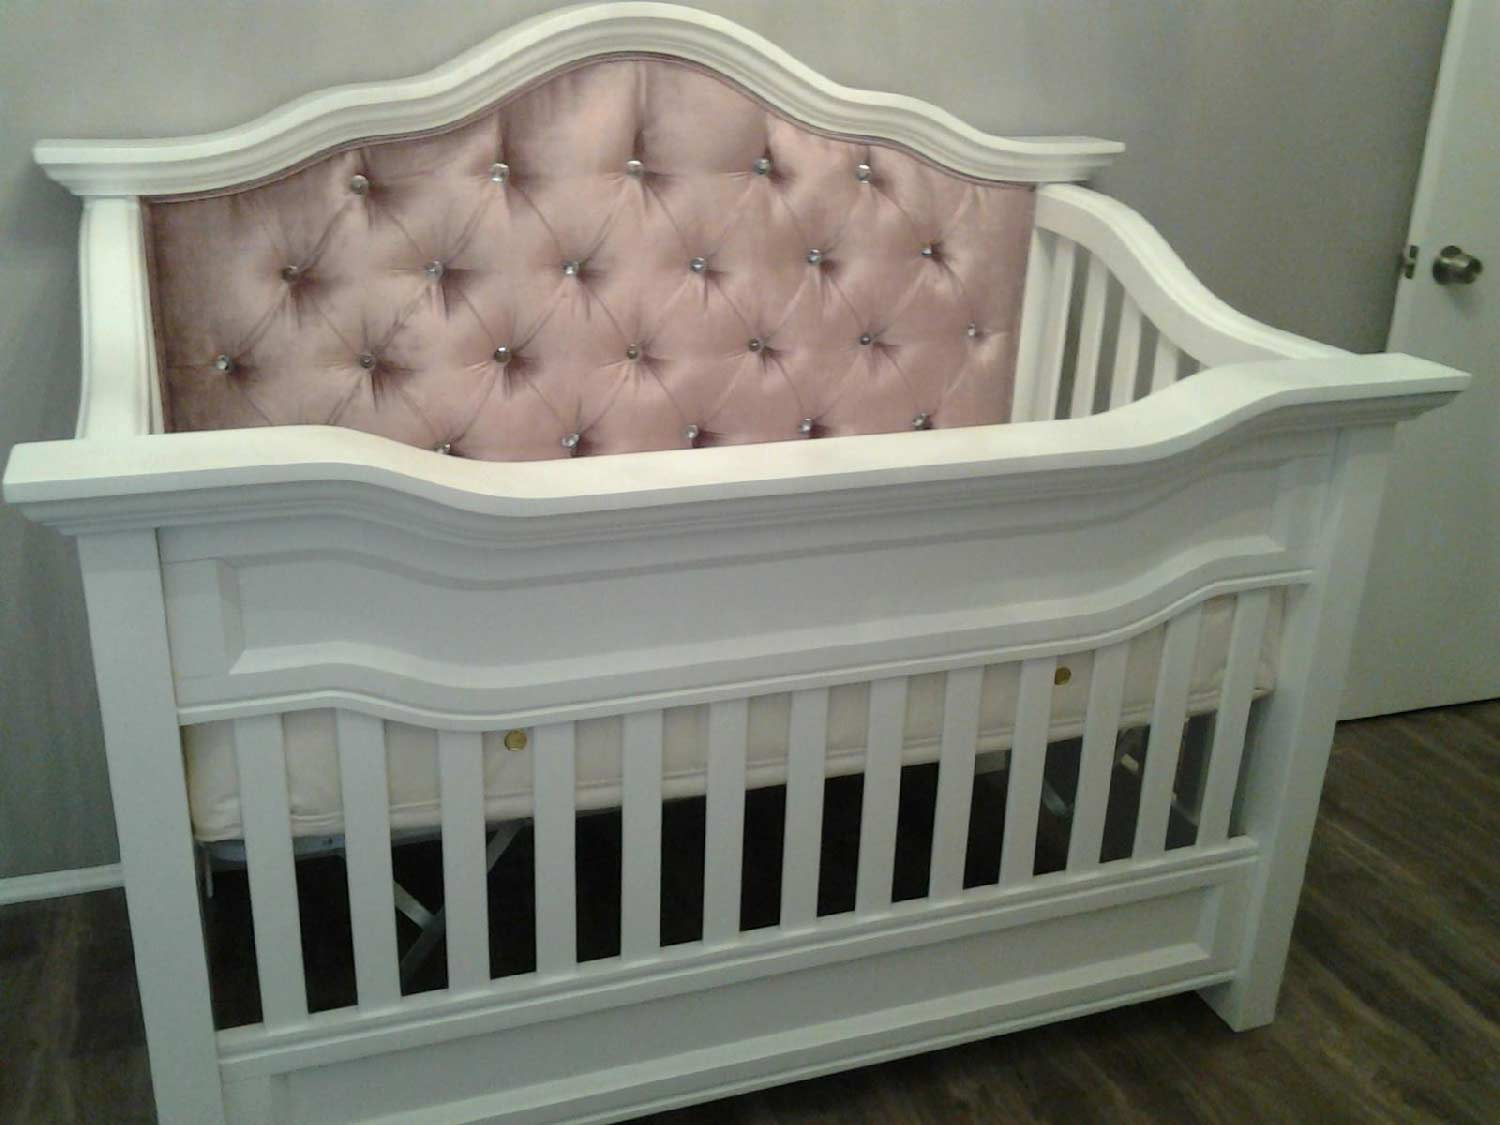 Beds With Storage Drawers Millbury Custom Tufted Convertible Crib - Kids Furniture